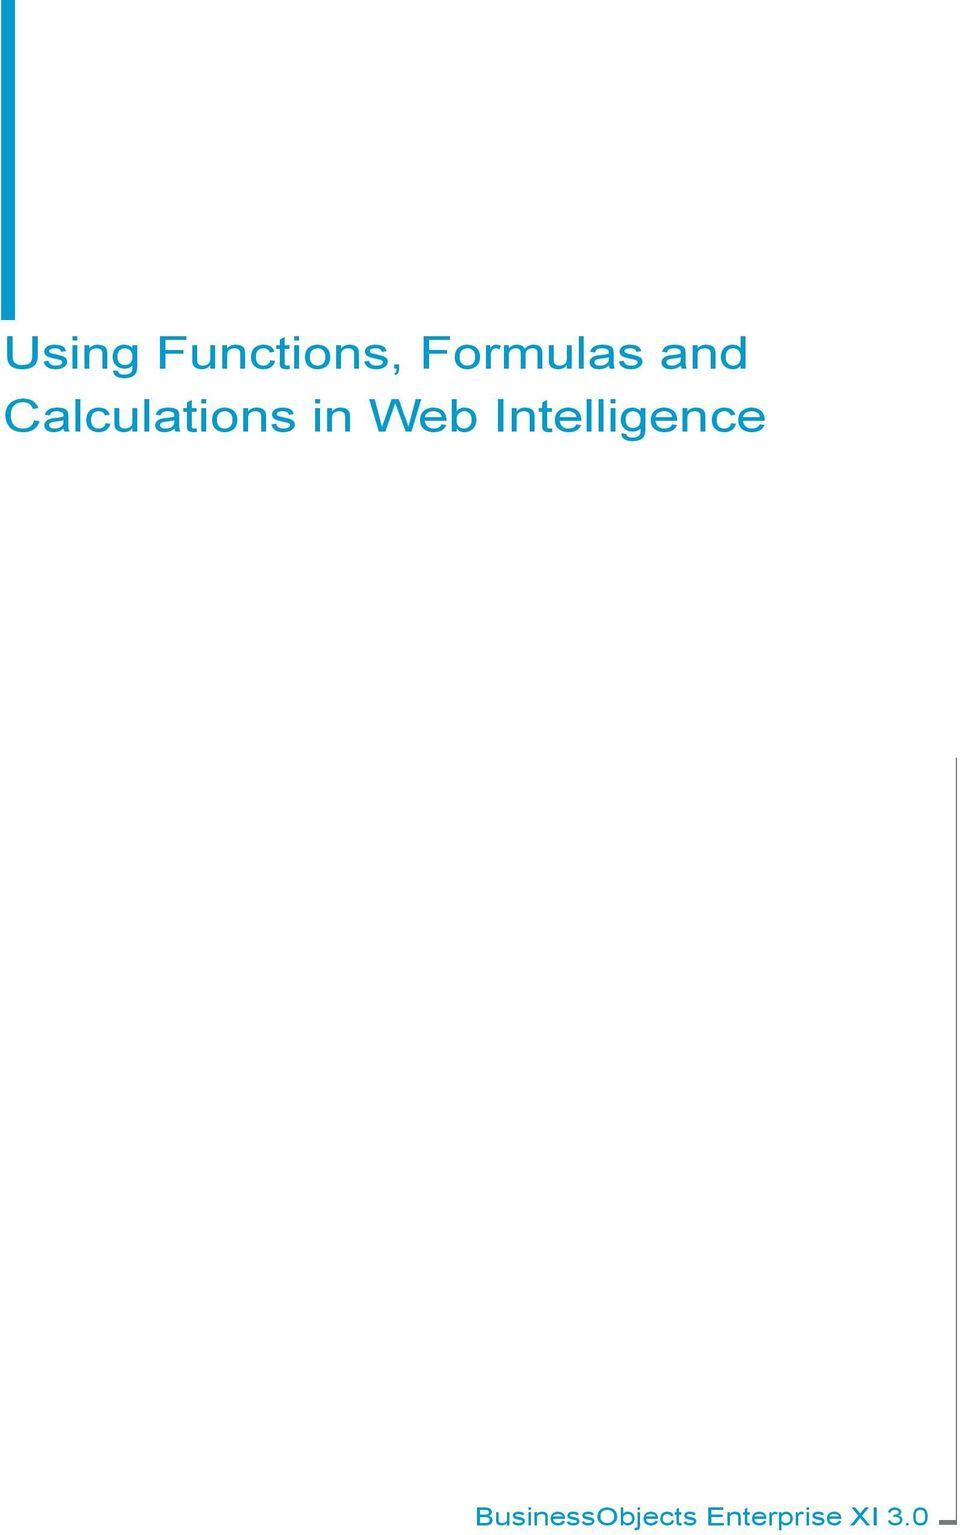 Using Functions, Formulas and Calculations in Web Intelligence - PDF